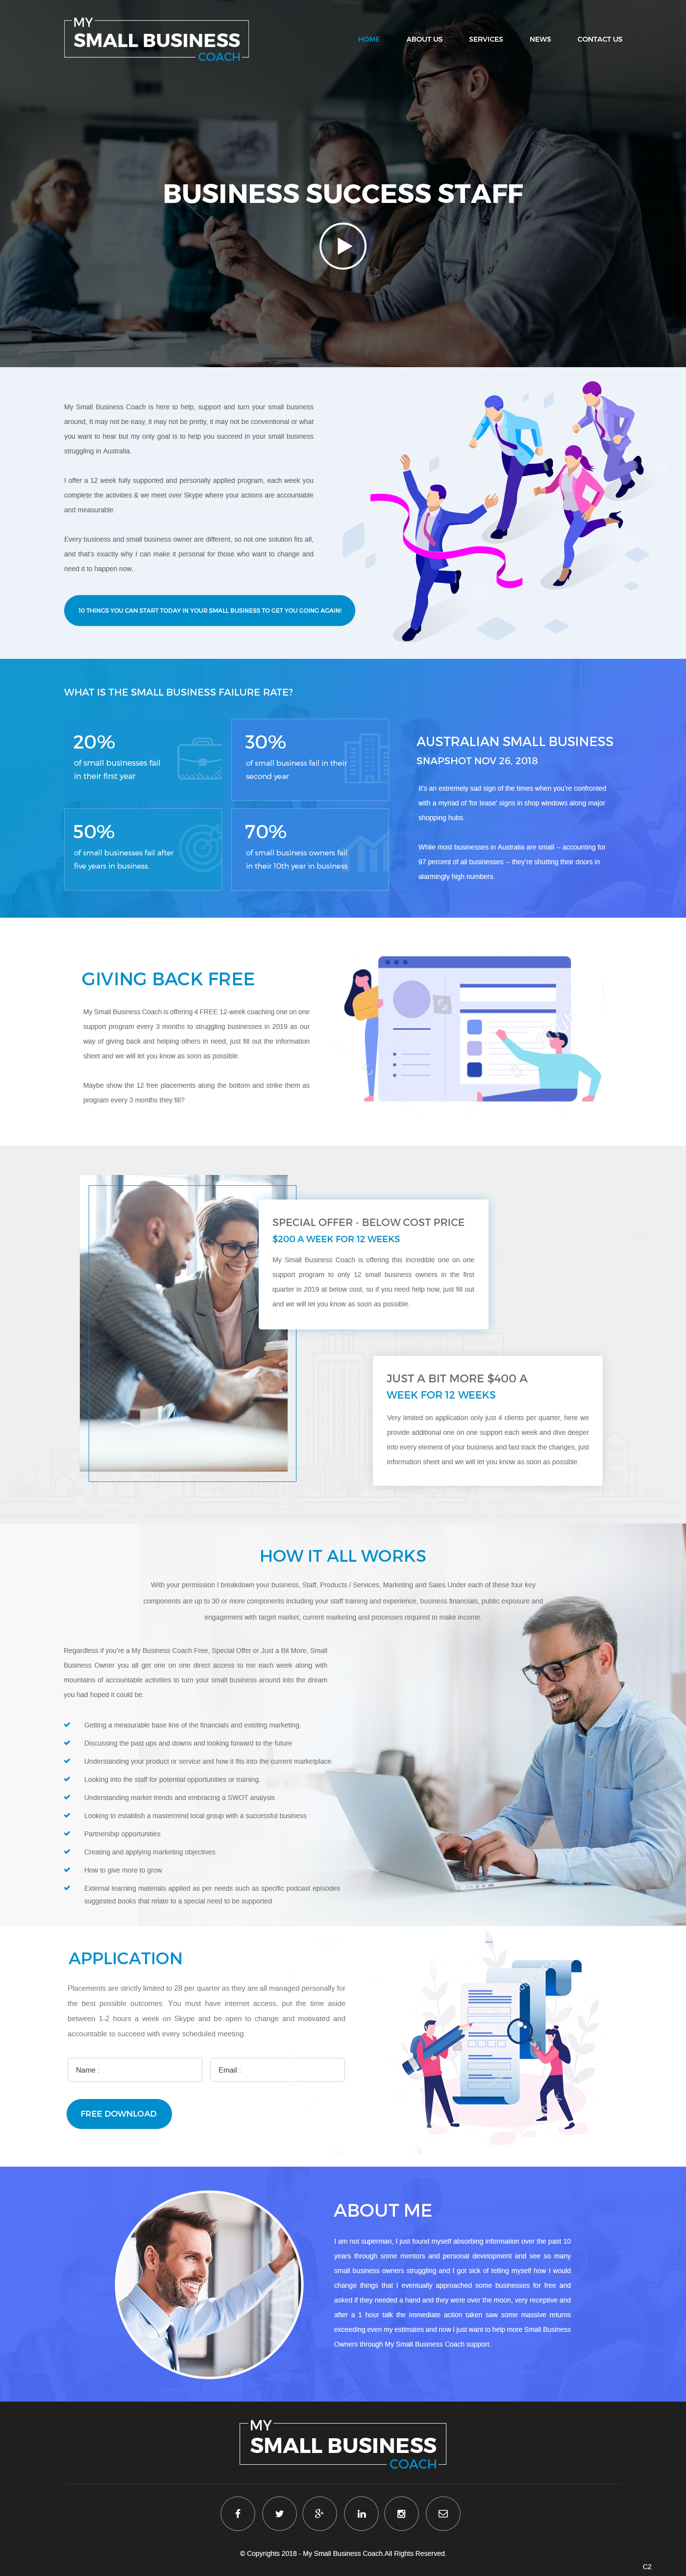 Modern Professional Business Consultant Web Design For My Small Business Coach By Pb Design 20639993